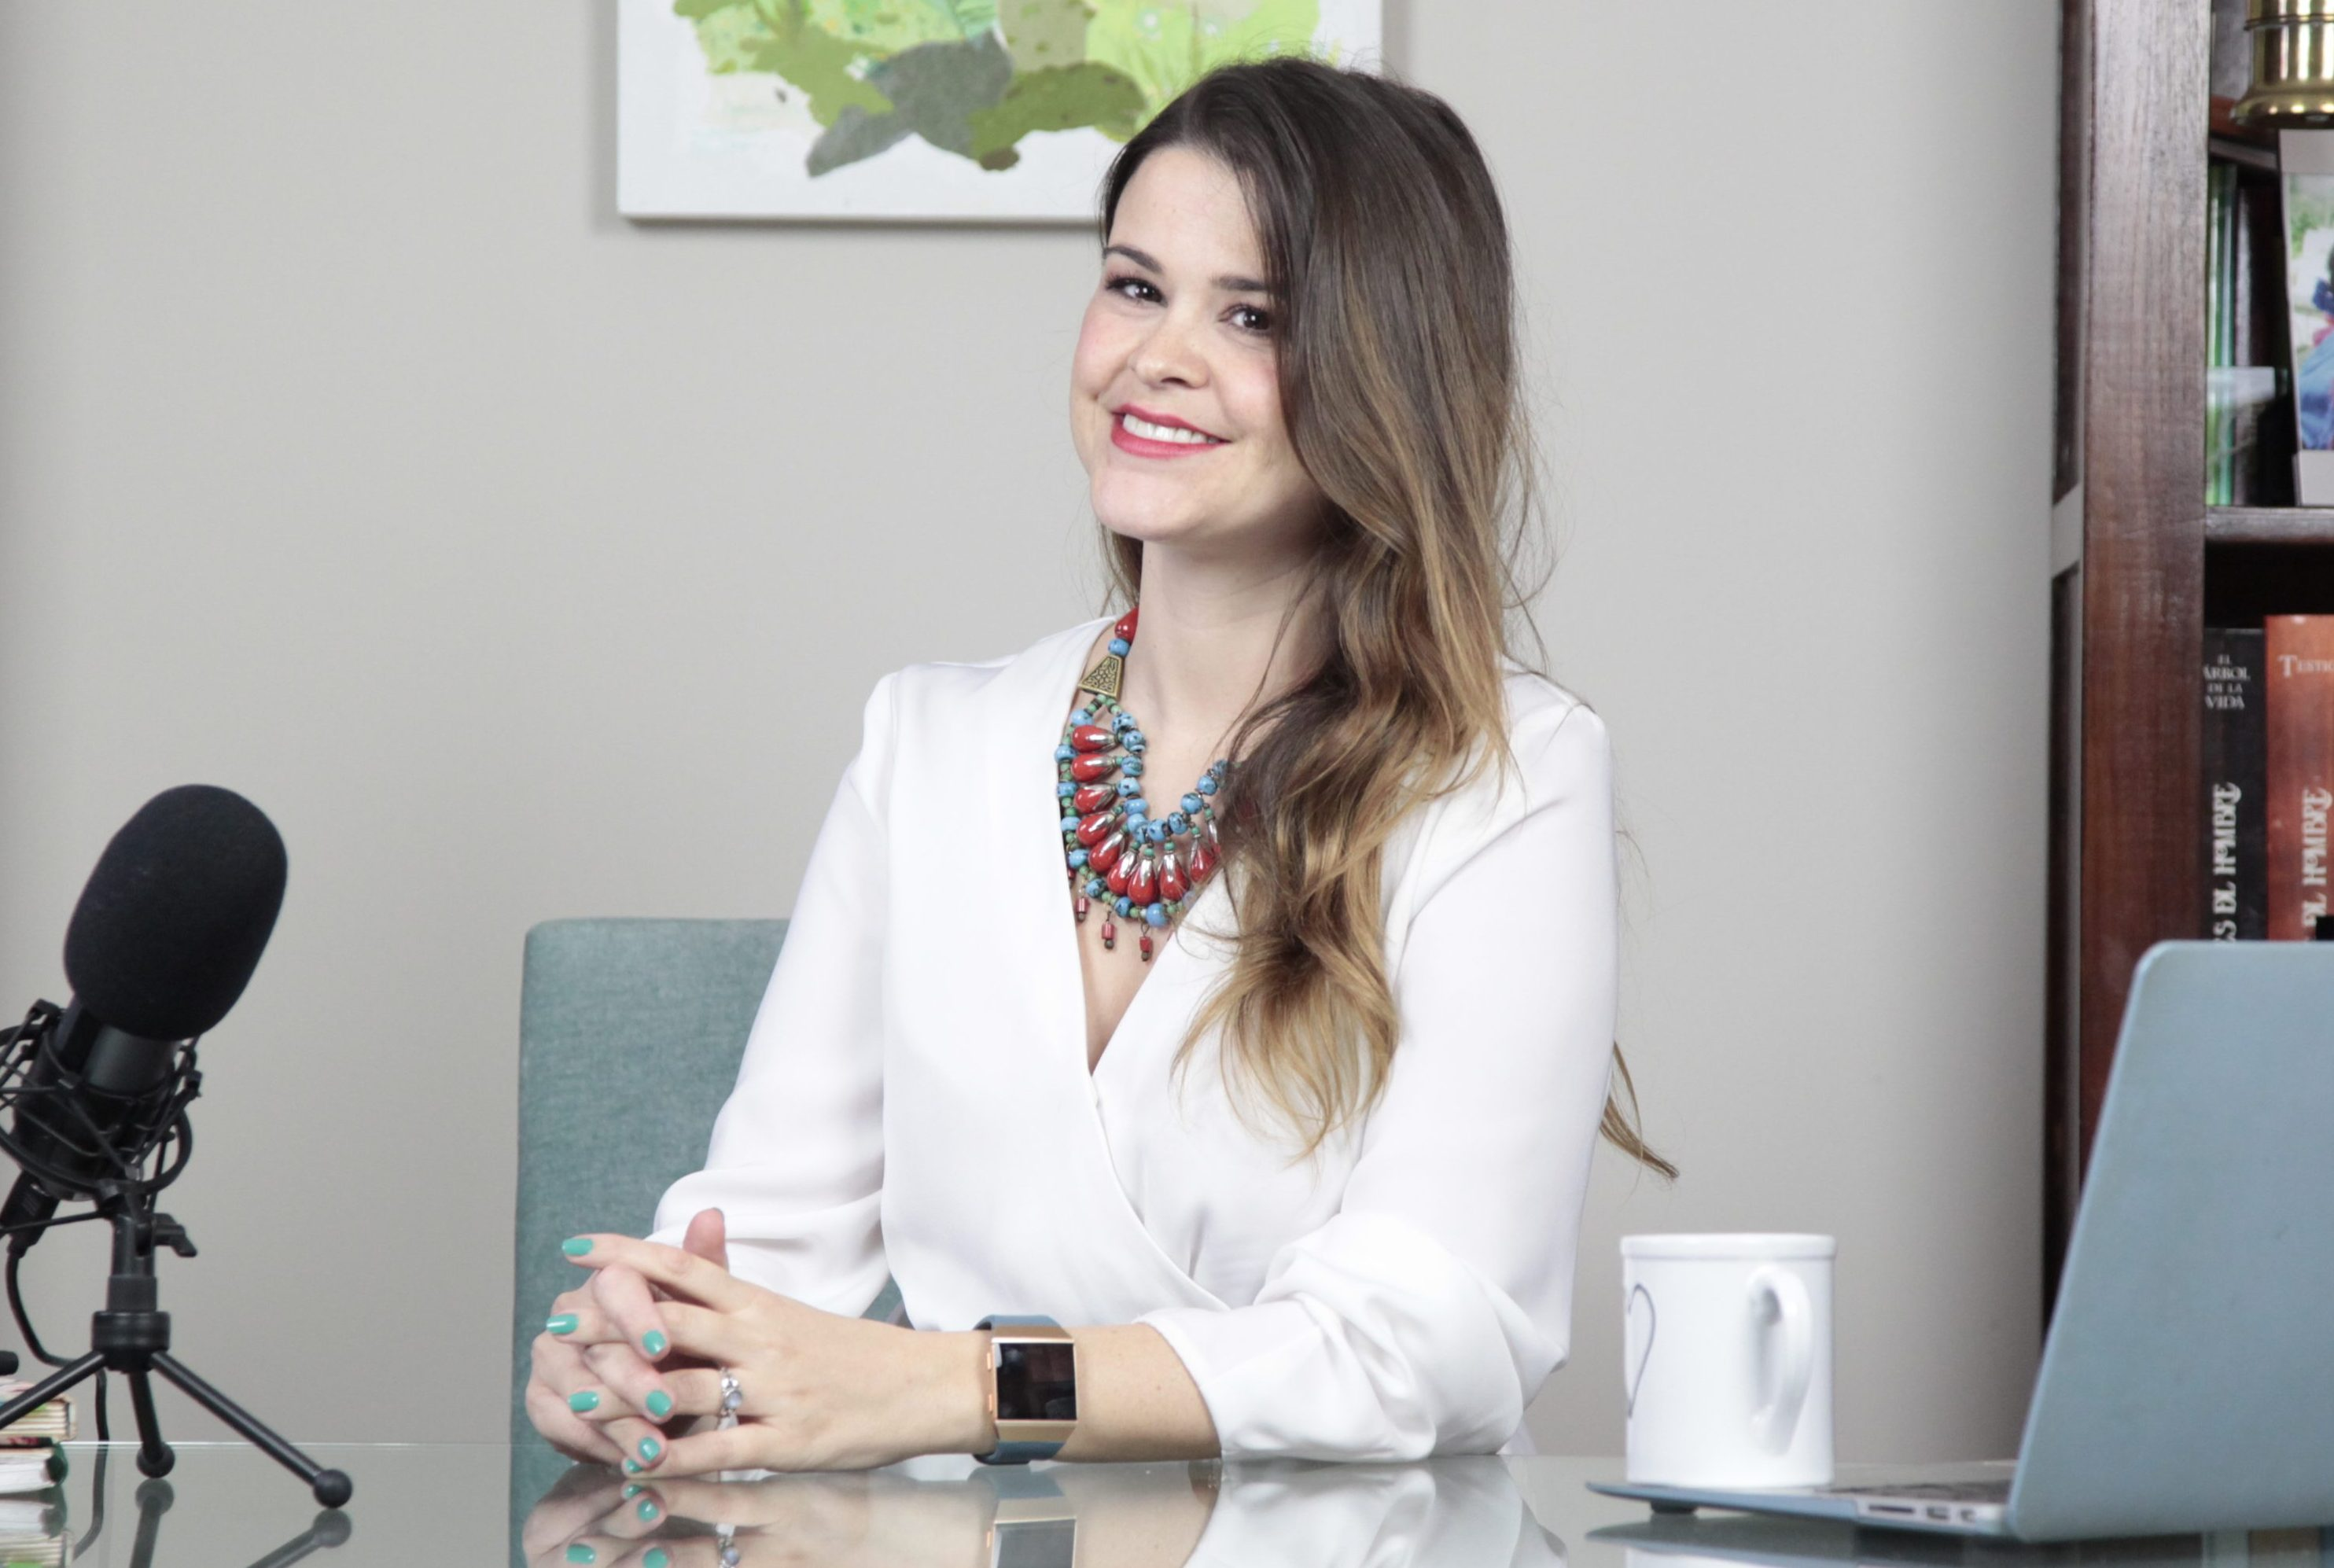 Adela Alonso Alonso branding consultant